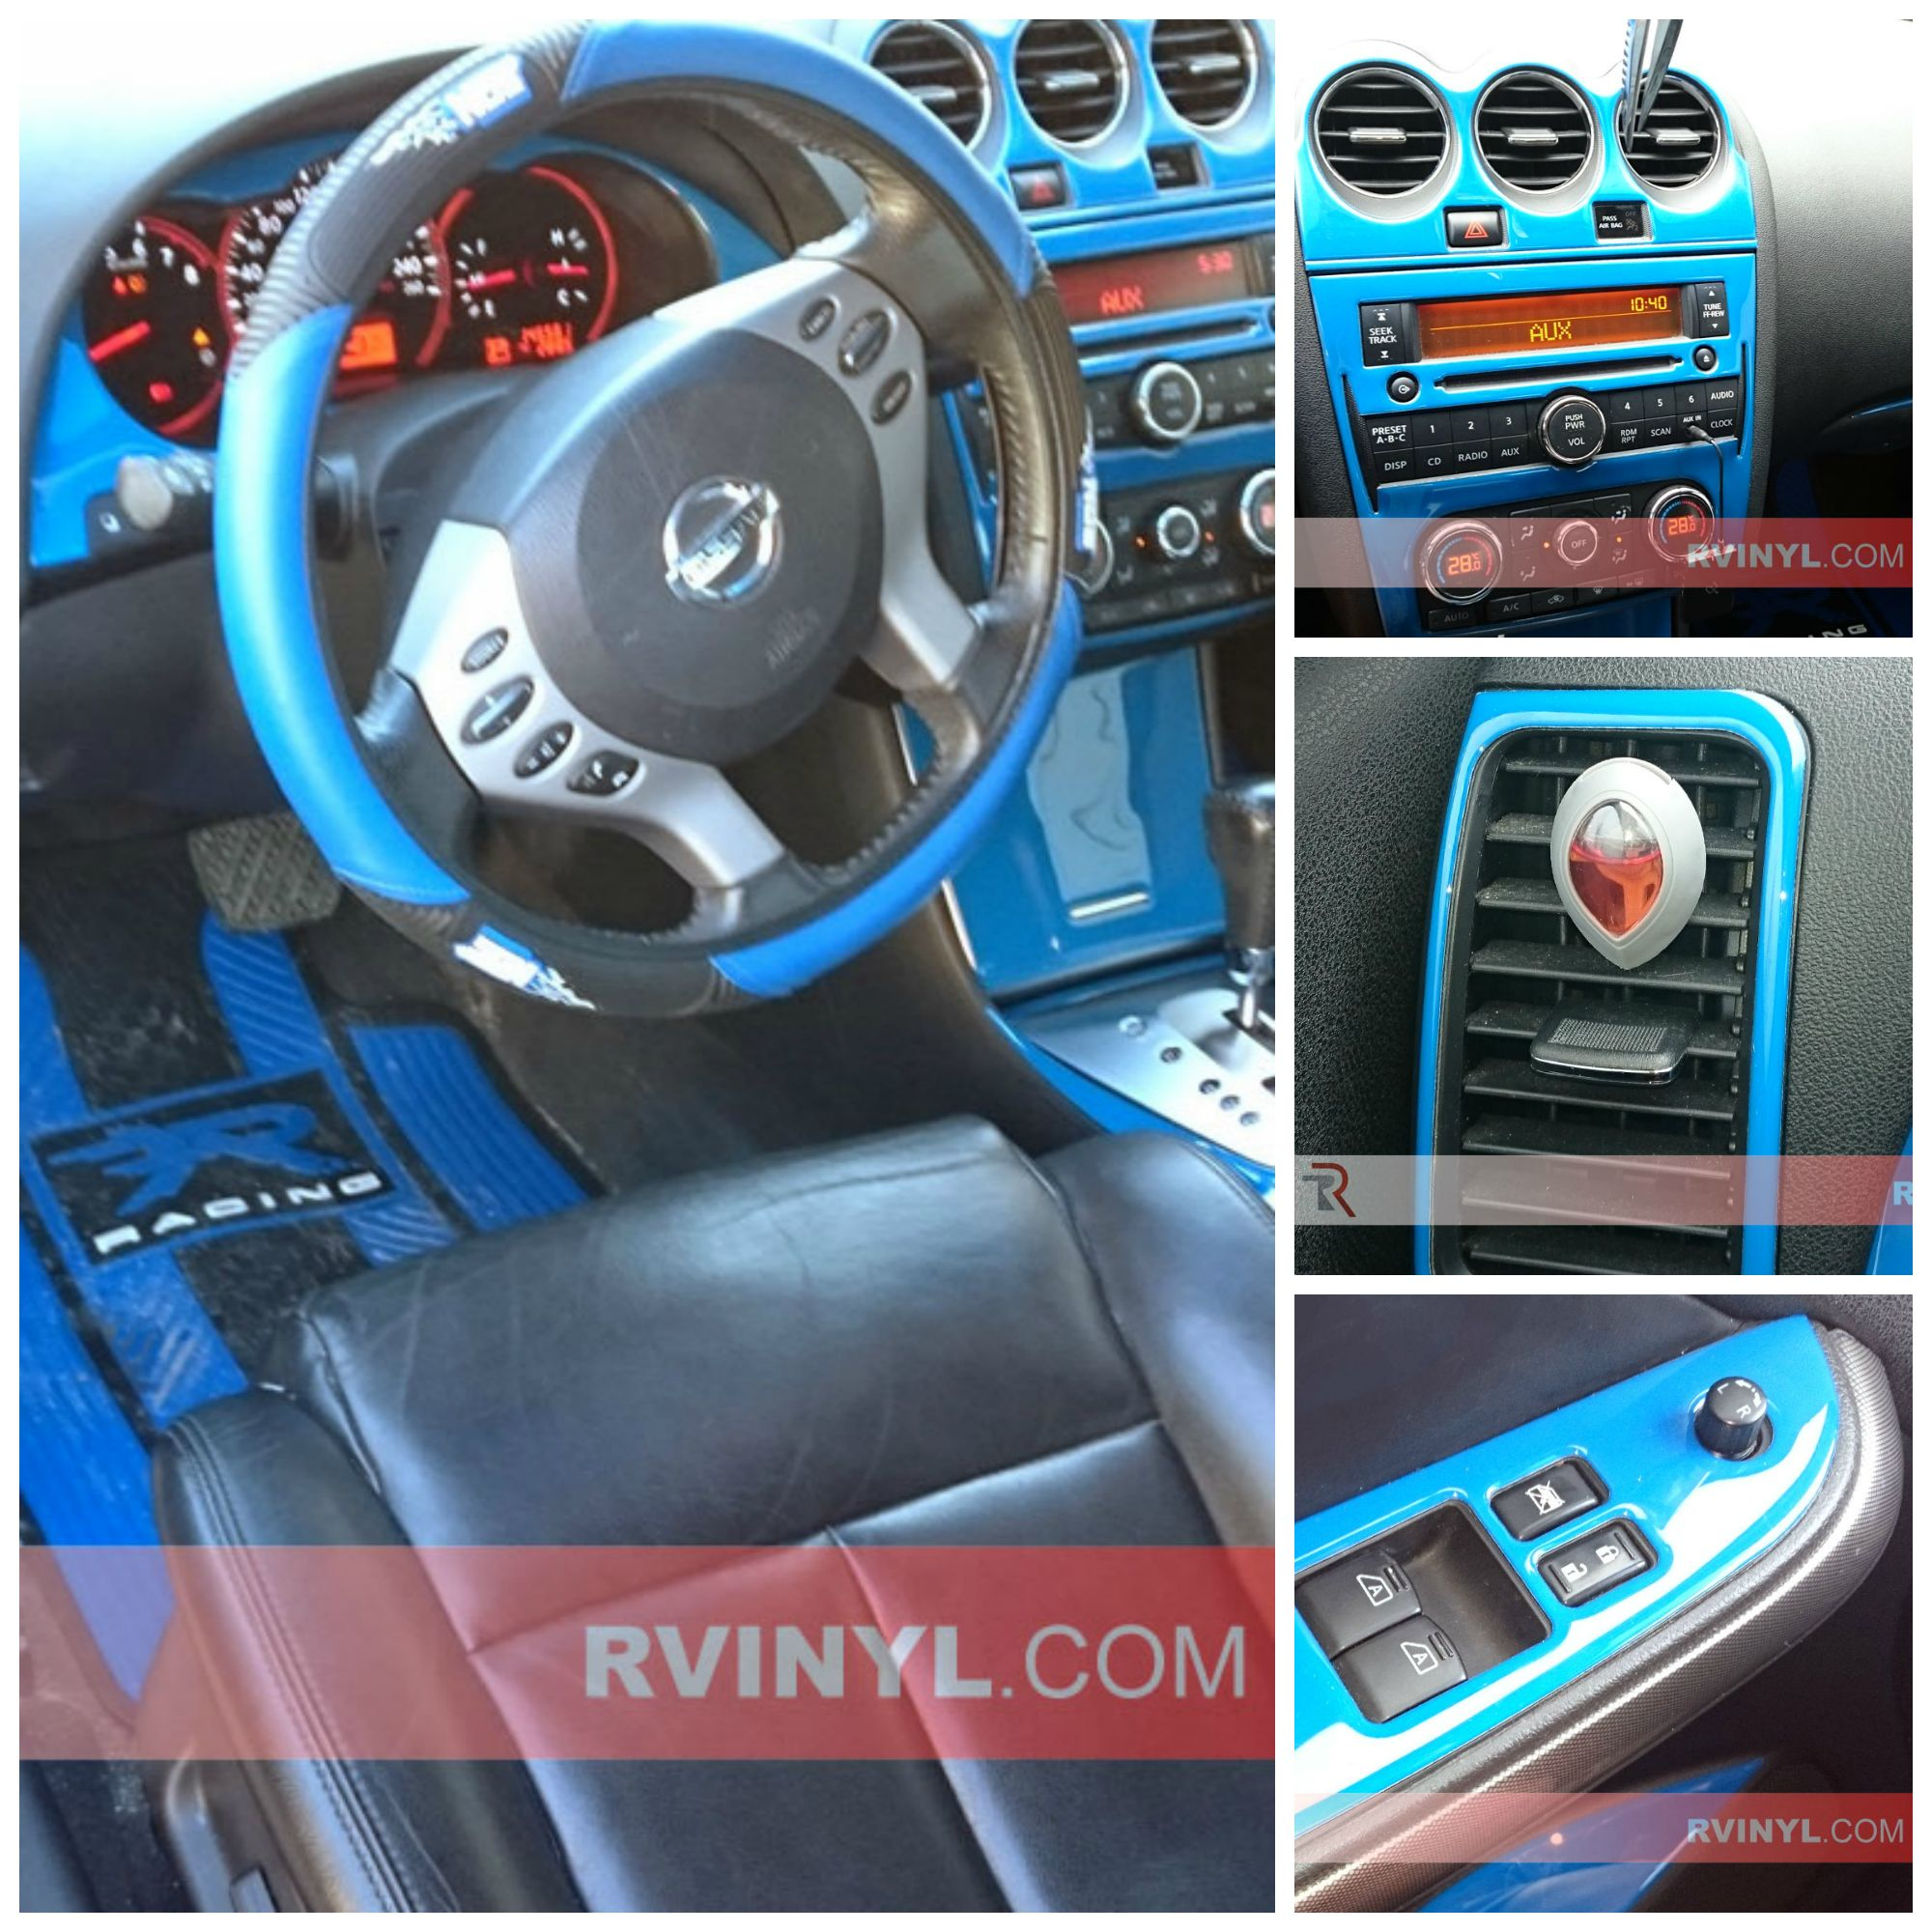 2008 Nissan Altima Coupe With A Gloss Blue Dash Kit Upgrade Nissan Altima Coupe Nissan Altima Nissan Accessories